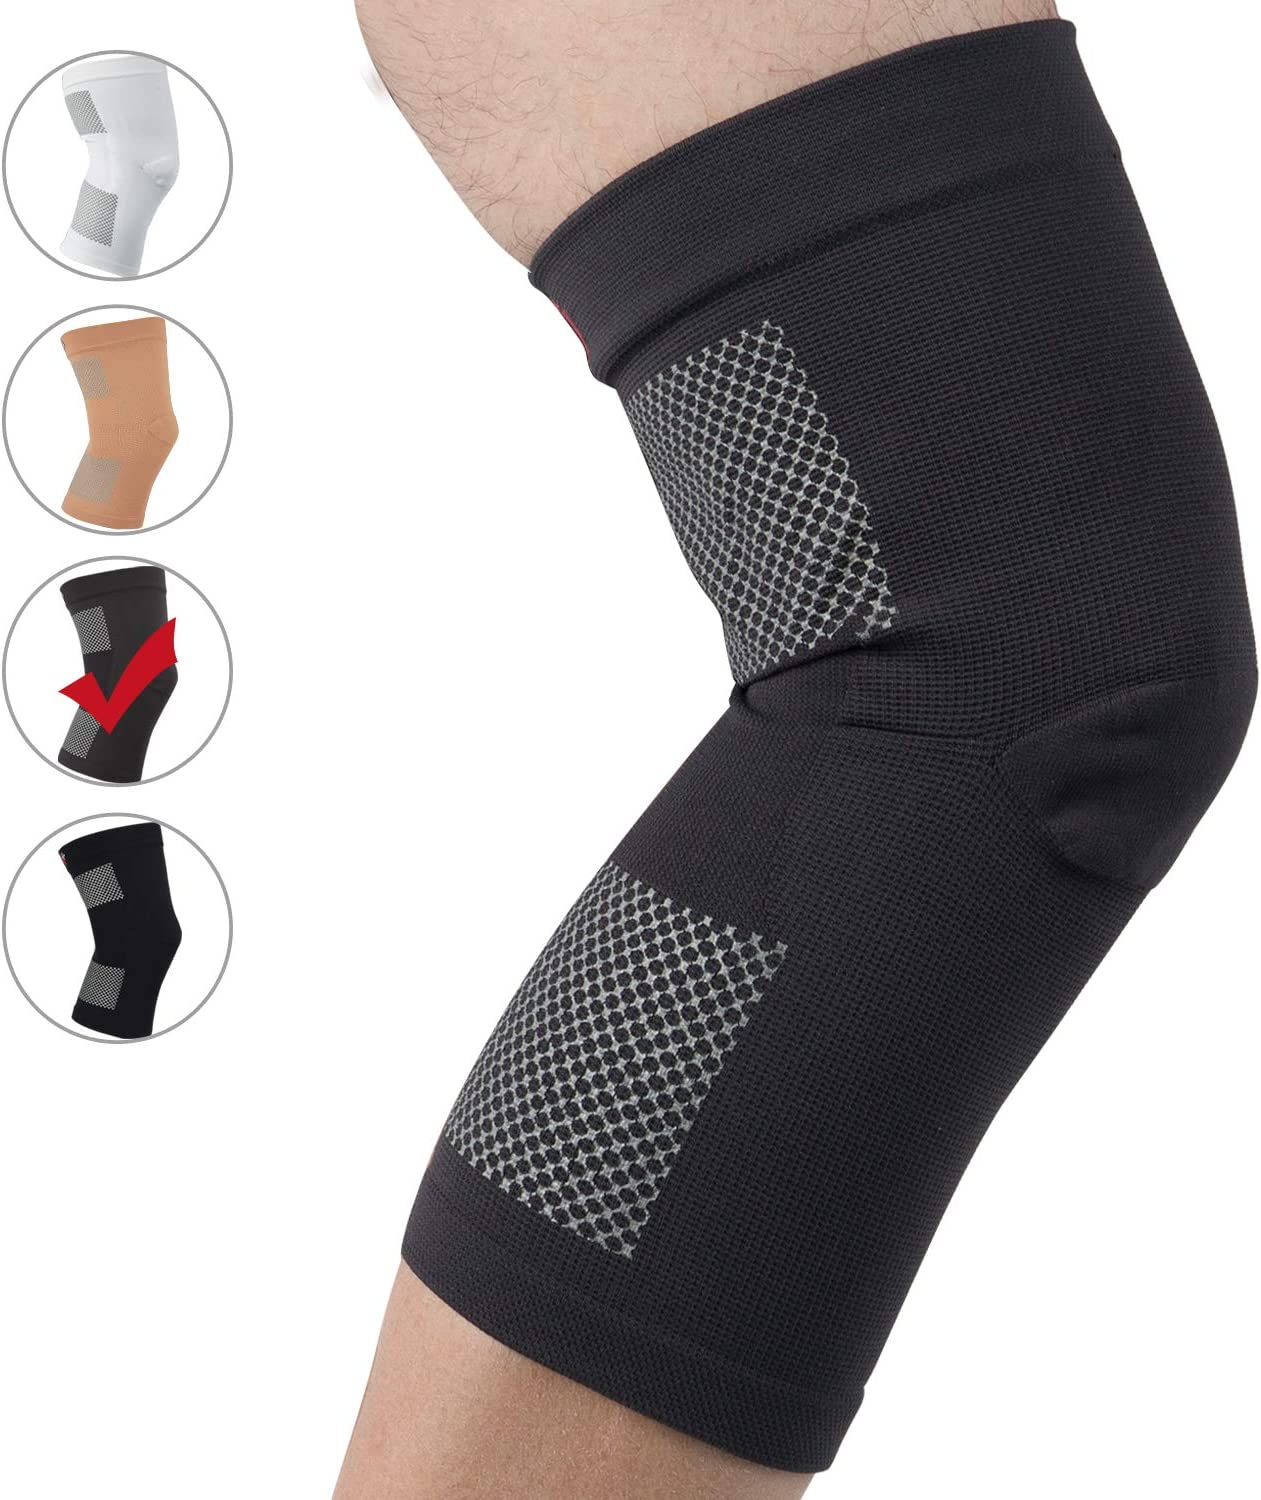 Arthritis Joint Pain Relief for Meniscus Tear Knee Support Brace for Men /& Women Injury Recovery,Workout +MD Knee Compression Sleeve ACL Basketball 2 Pack Sports MCL Running